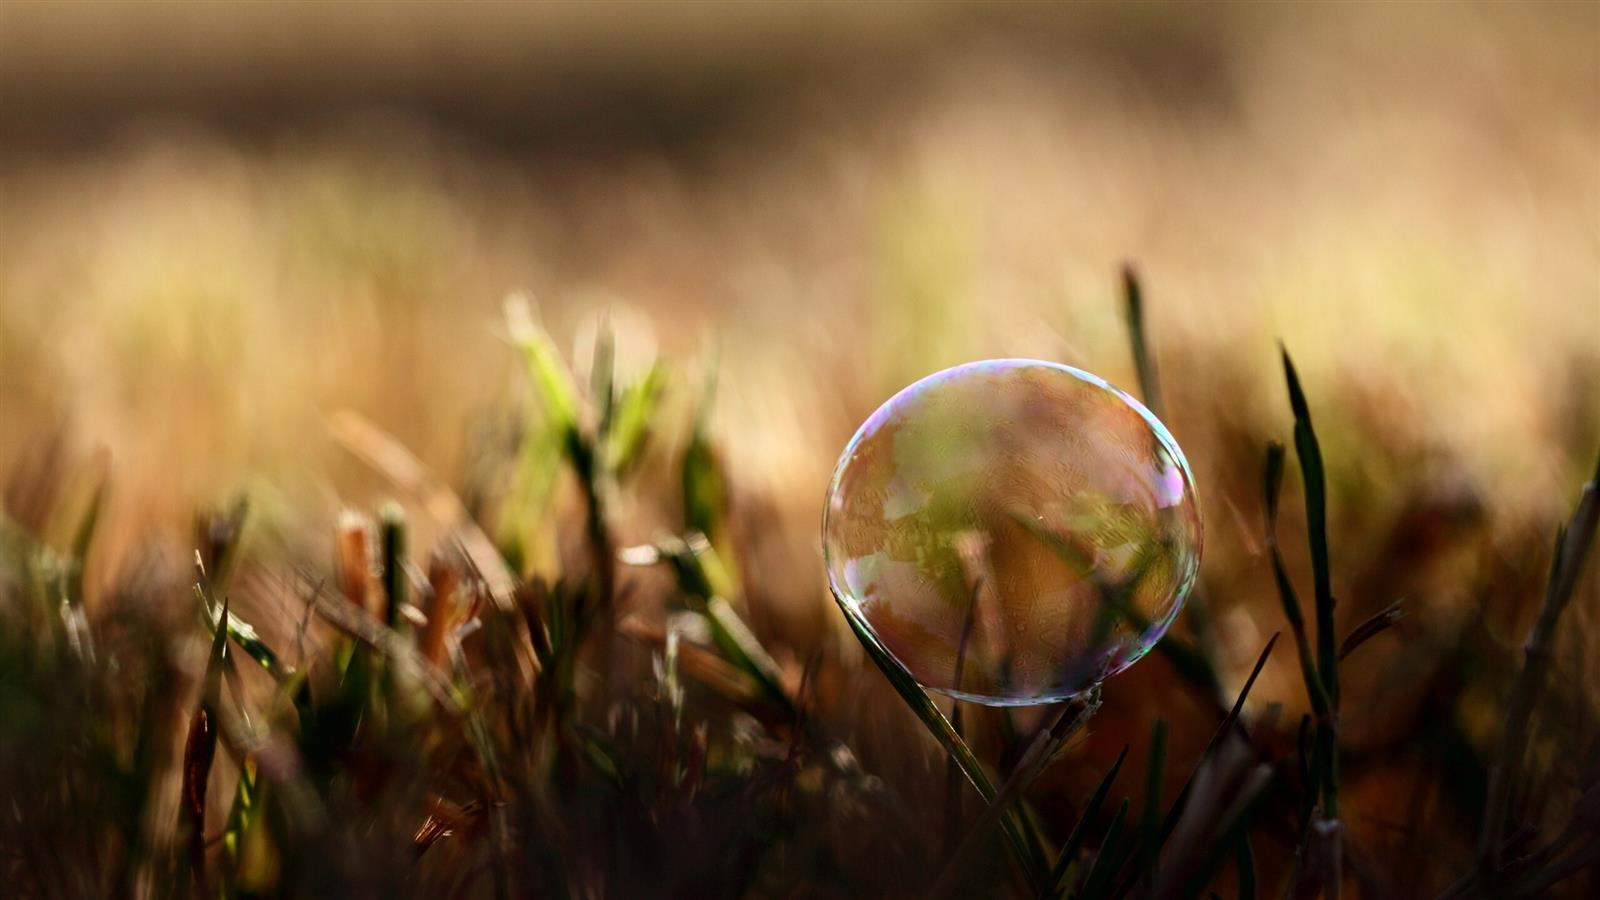 1600x900 3D Bubble in Grass Wallpaper